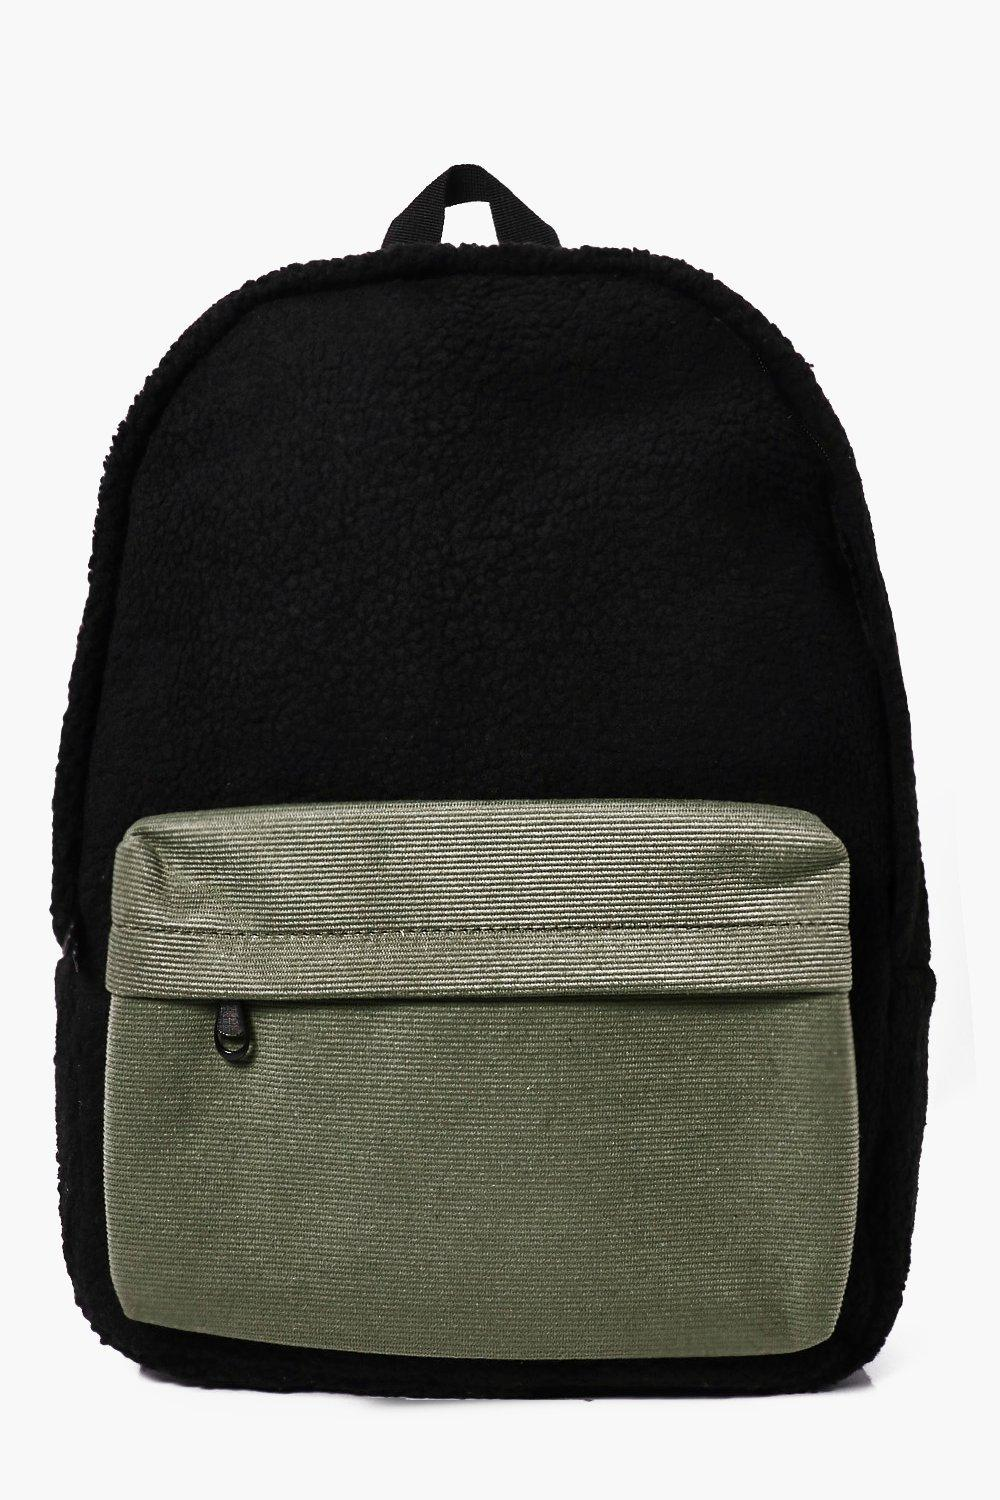 Back Pack With Contrast  Pocket - black - Borg Bac